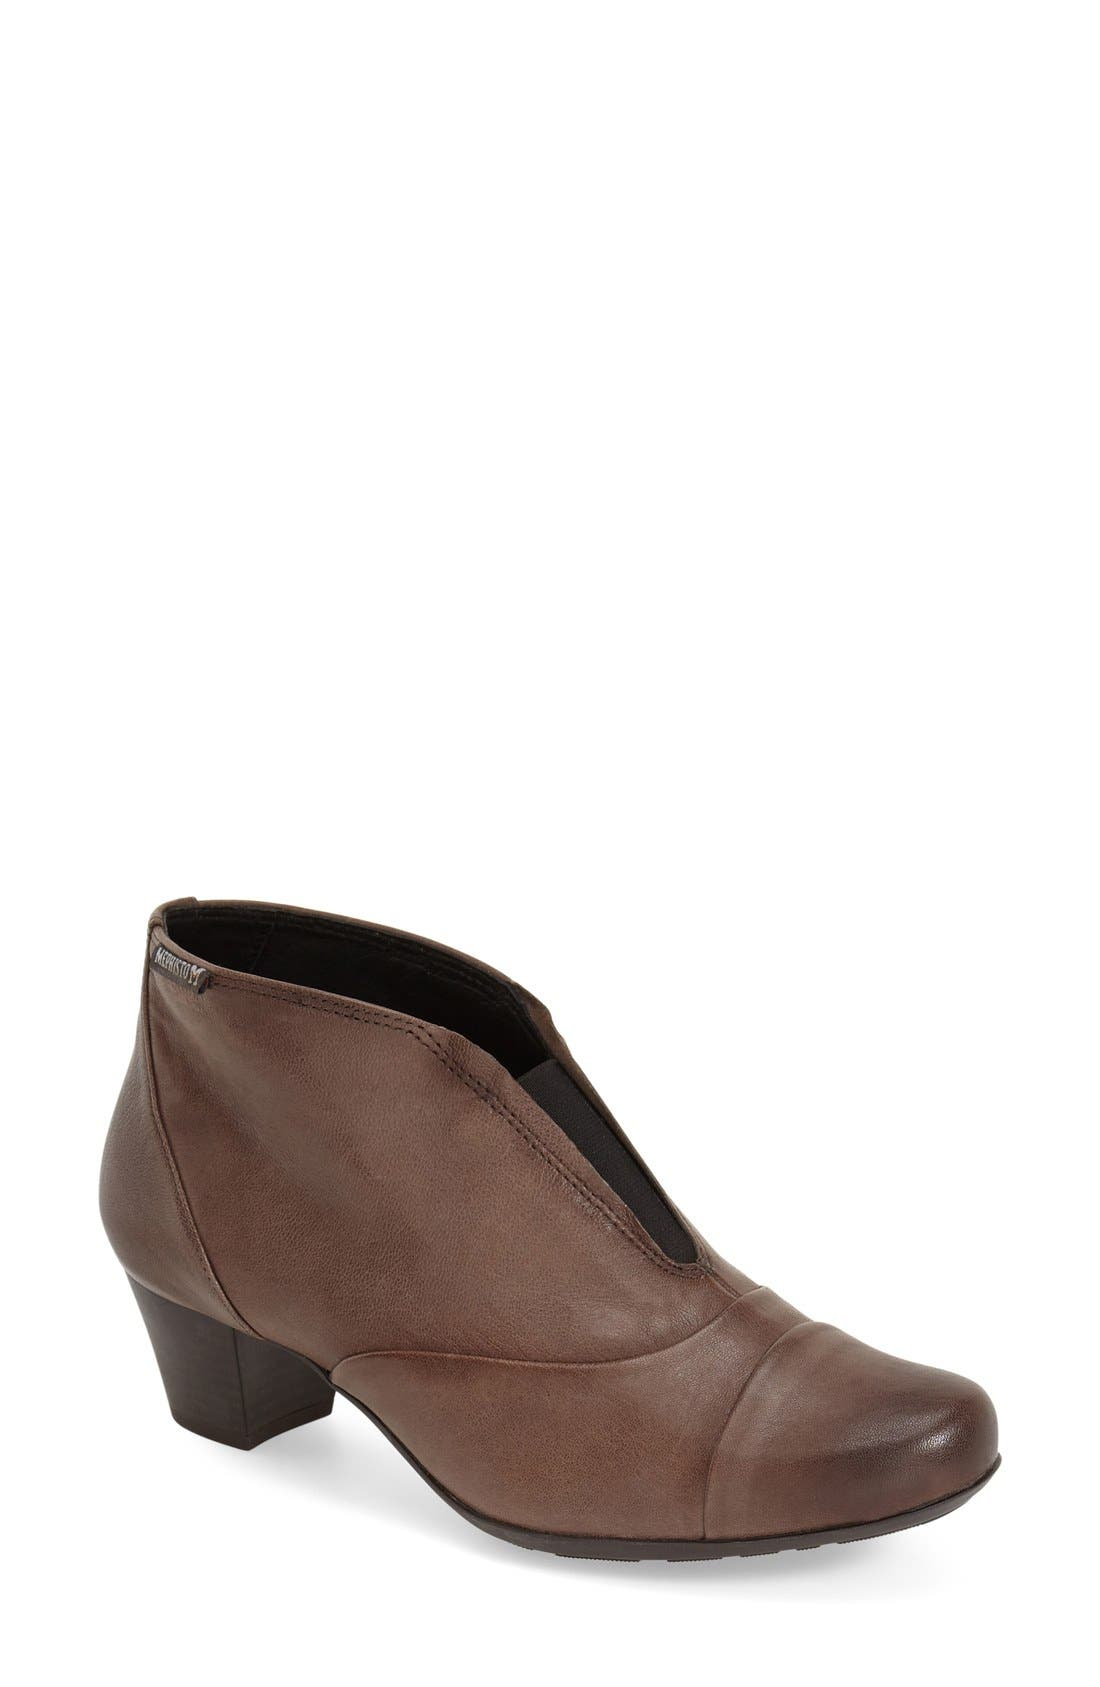 'Maddie' Bootie,                             Main thumbnail 1, color,                             Dark Taupe Nappa